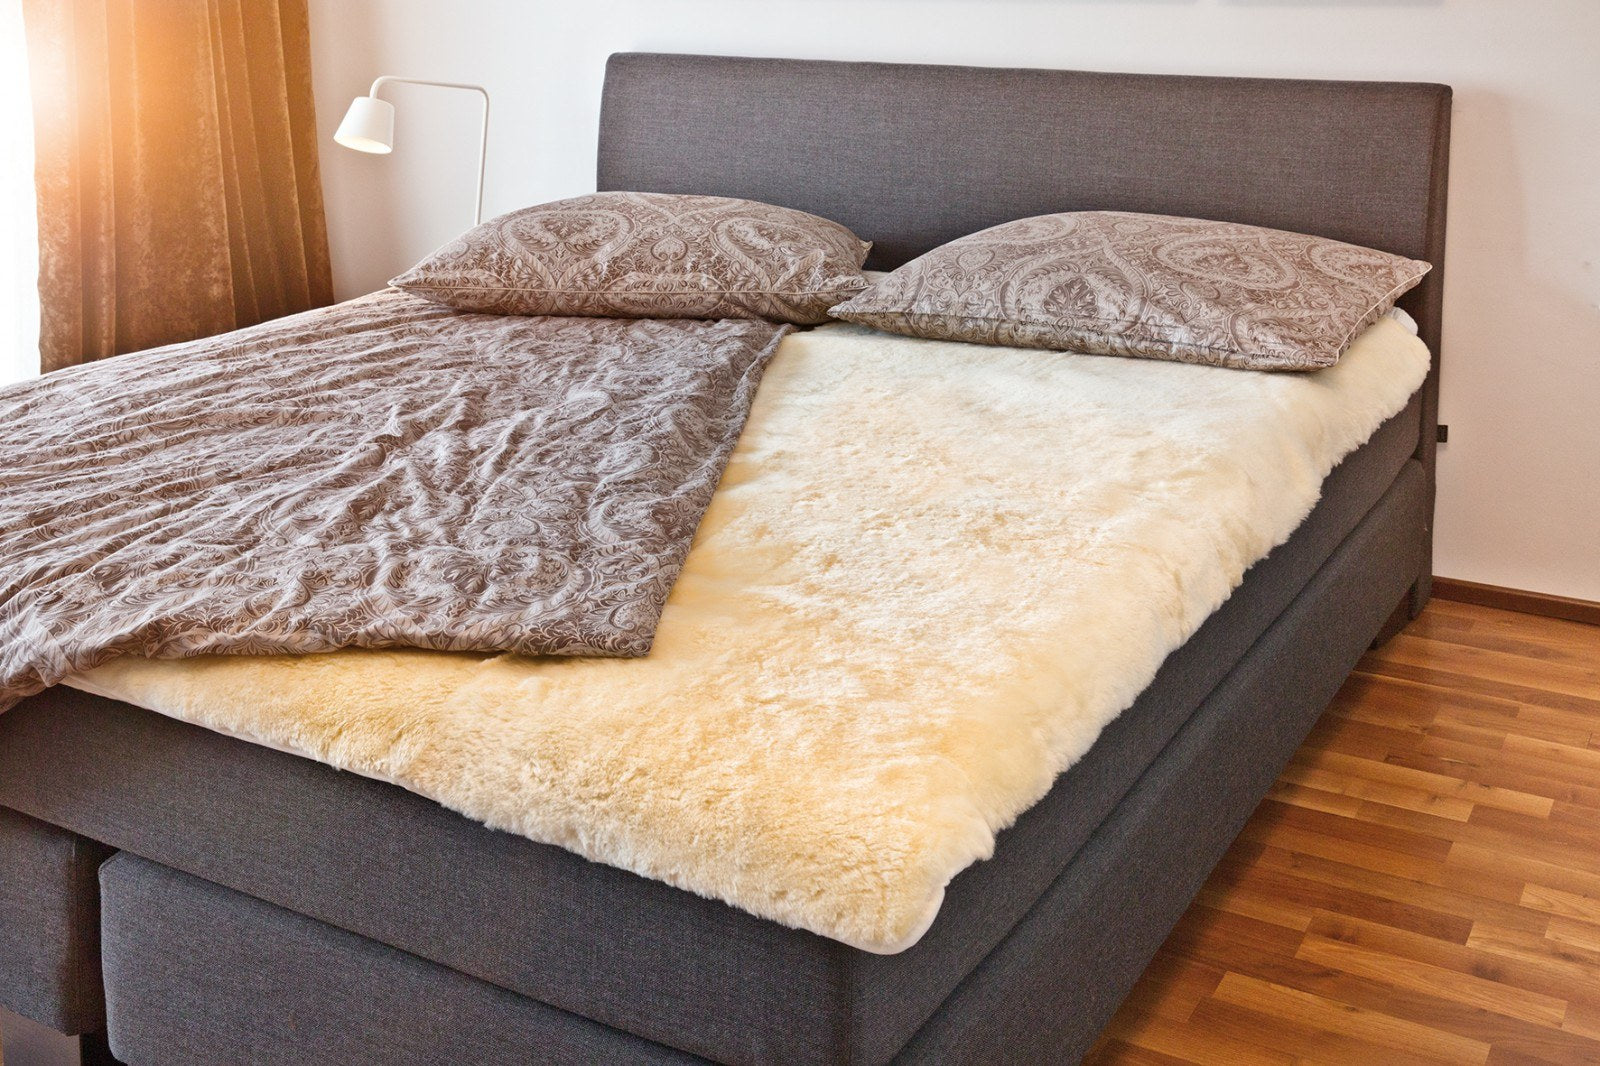 Sheepskin Mattress Covers